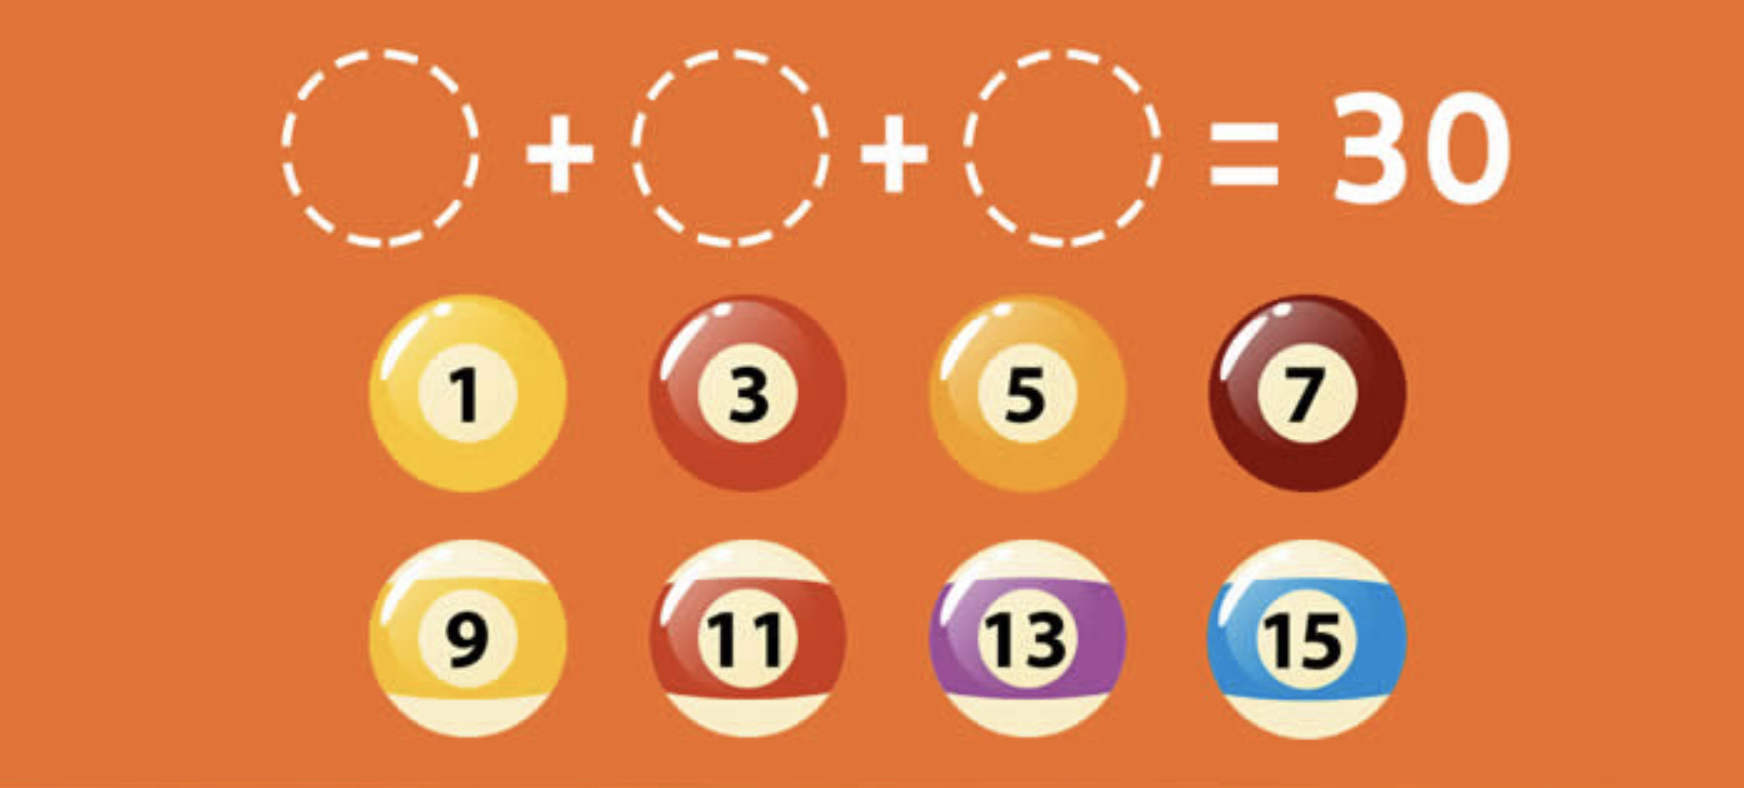 What ball combination can be placed in the dotted line circles to make 30? Image Courtesy: mentalup.co